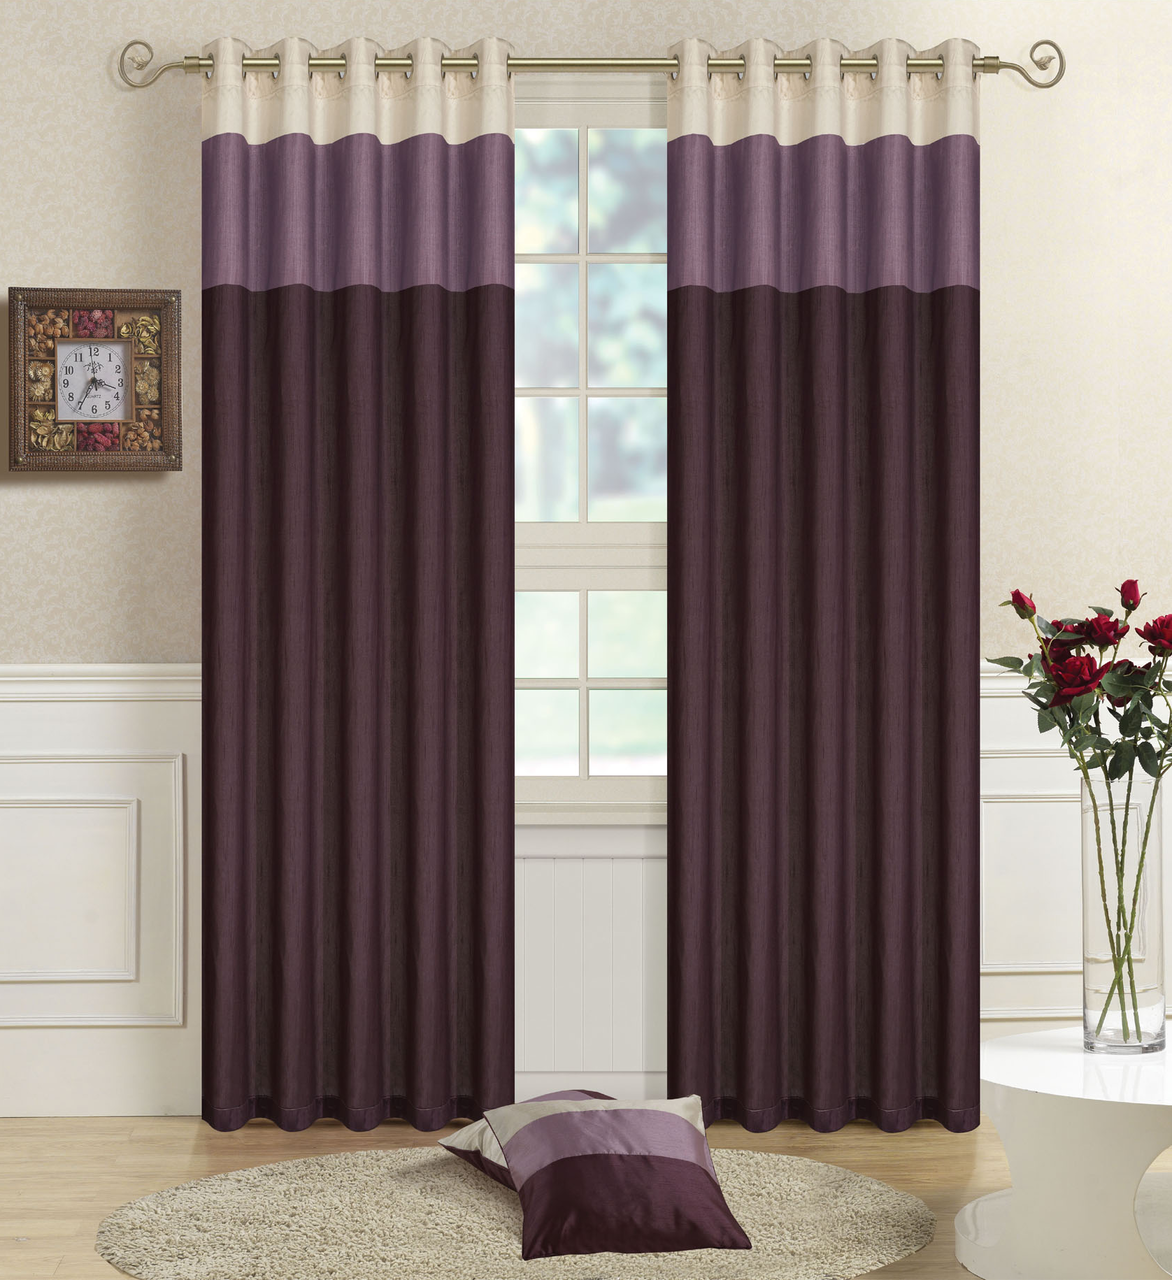 Sweet Violet Bedroom Curtain Photos Collection : Fabulous Violet ...